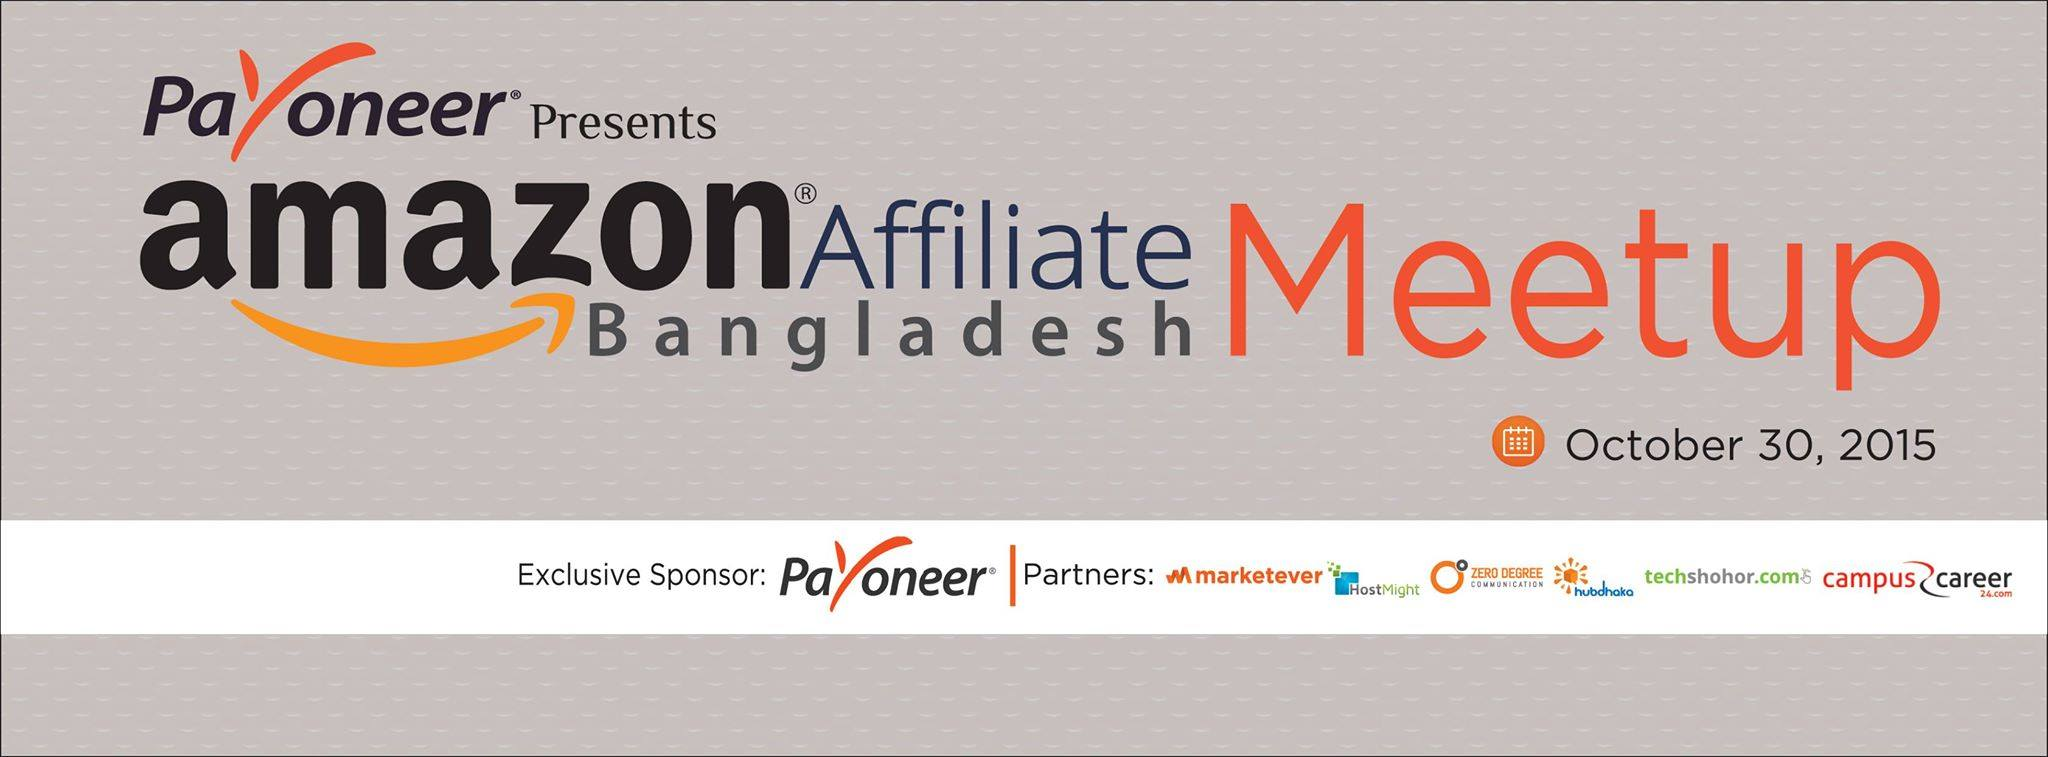 "Host Might is proud to be the hosting partner of ""Amazon Affiliate Bangladesh Meetup"